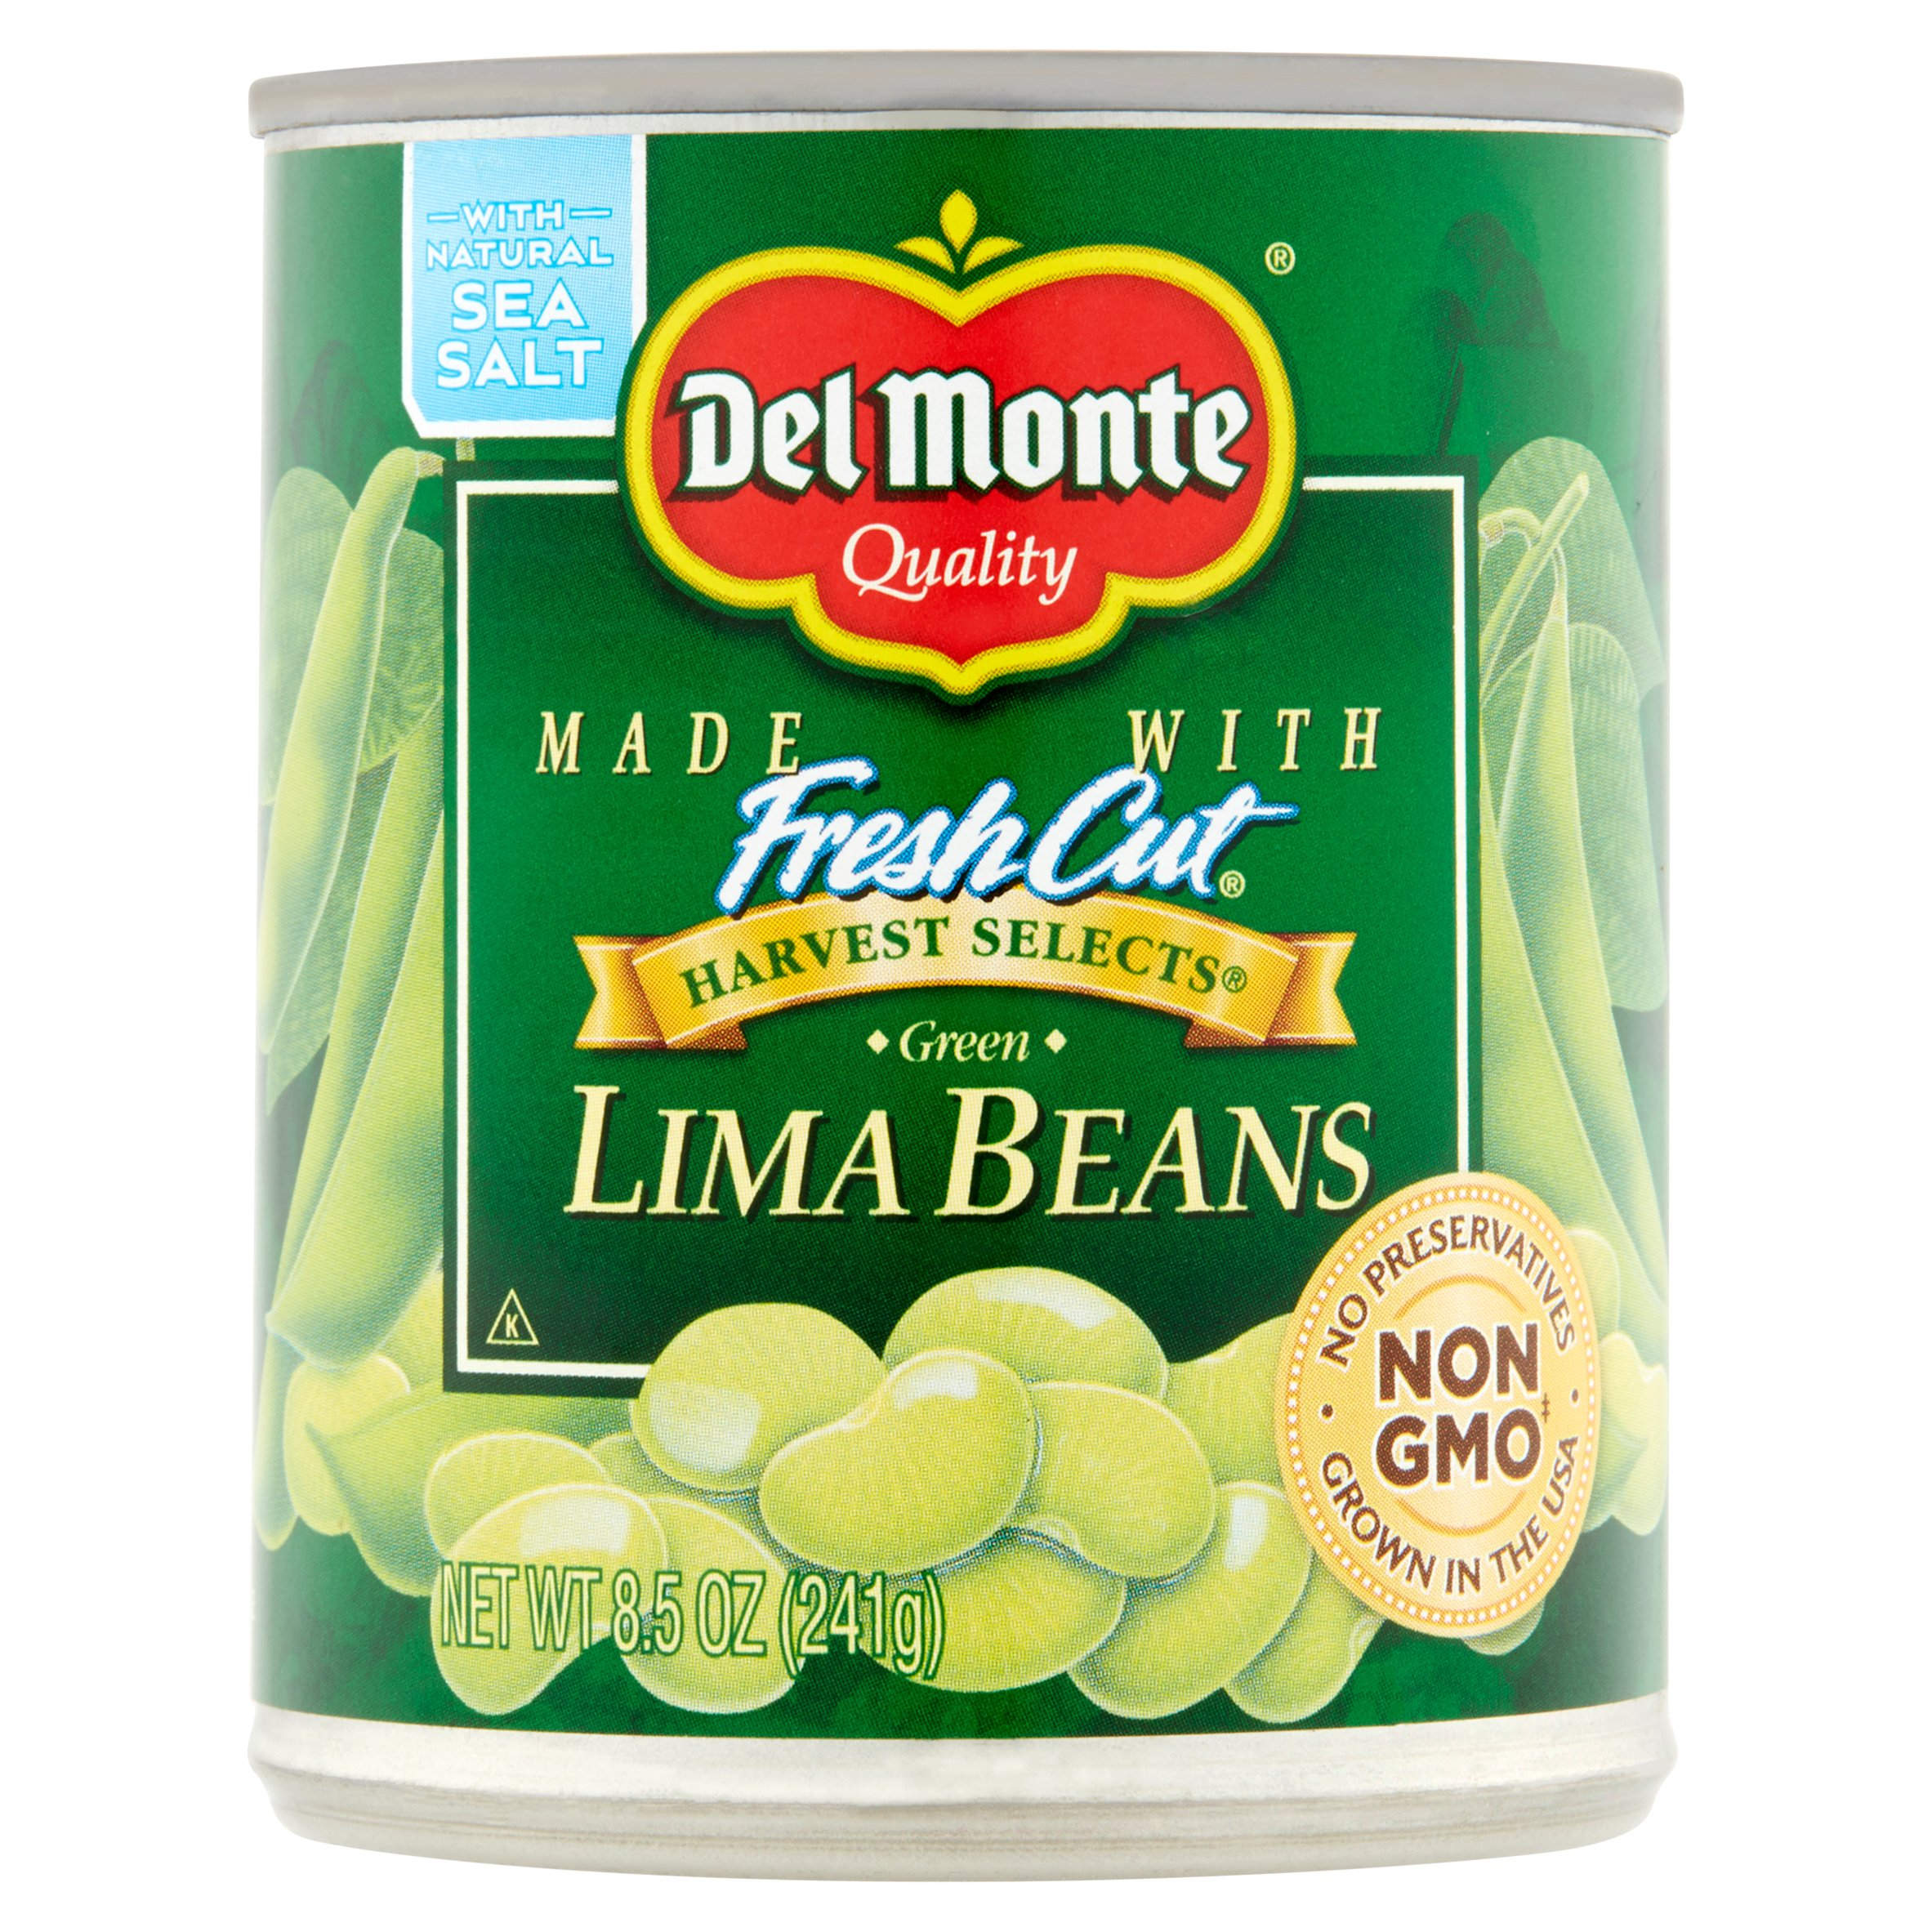 Del Monte Fresh Cut Harvest Selects Green Lima Beans, 8.5 oz